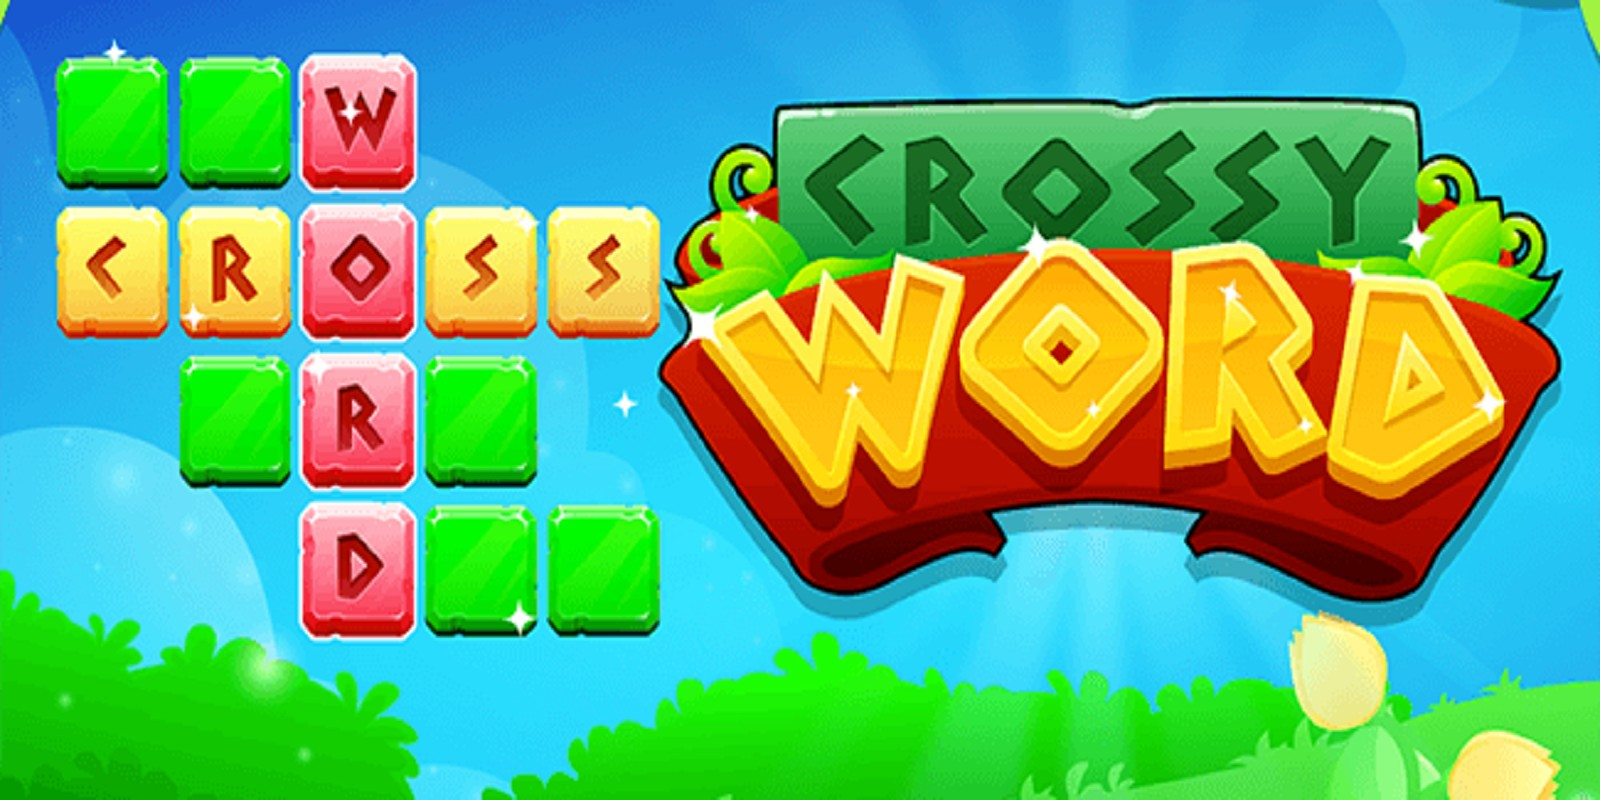 Crossy Word - Unity Project